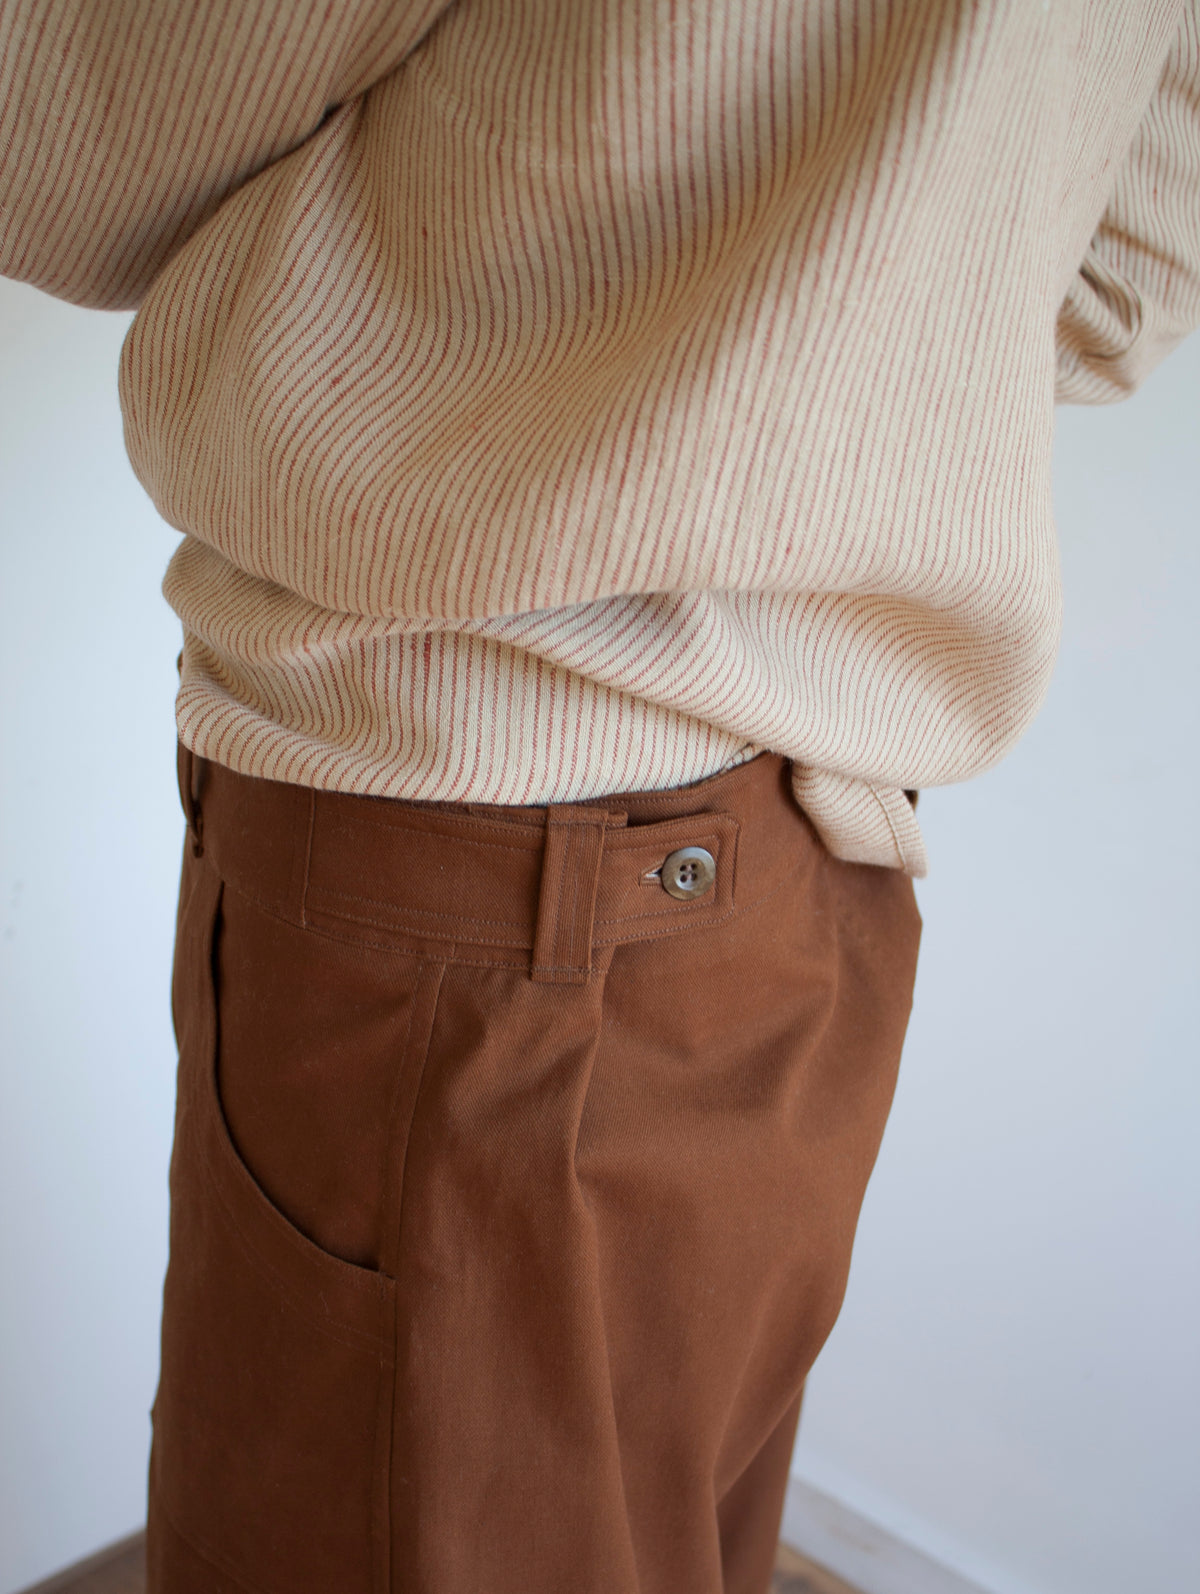 shop pajotten menswear close up image of the side view of a pair of chore trousers with side button fastening worn with a striped beige linen shirt